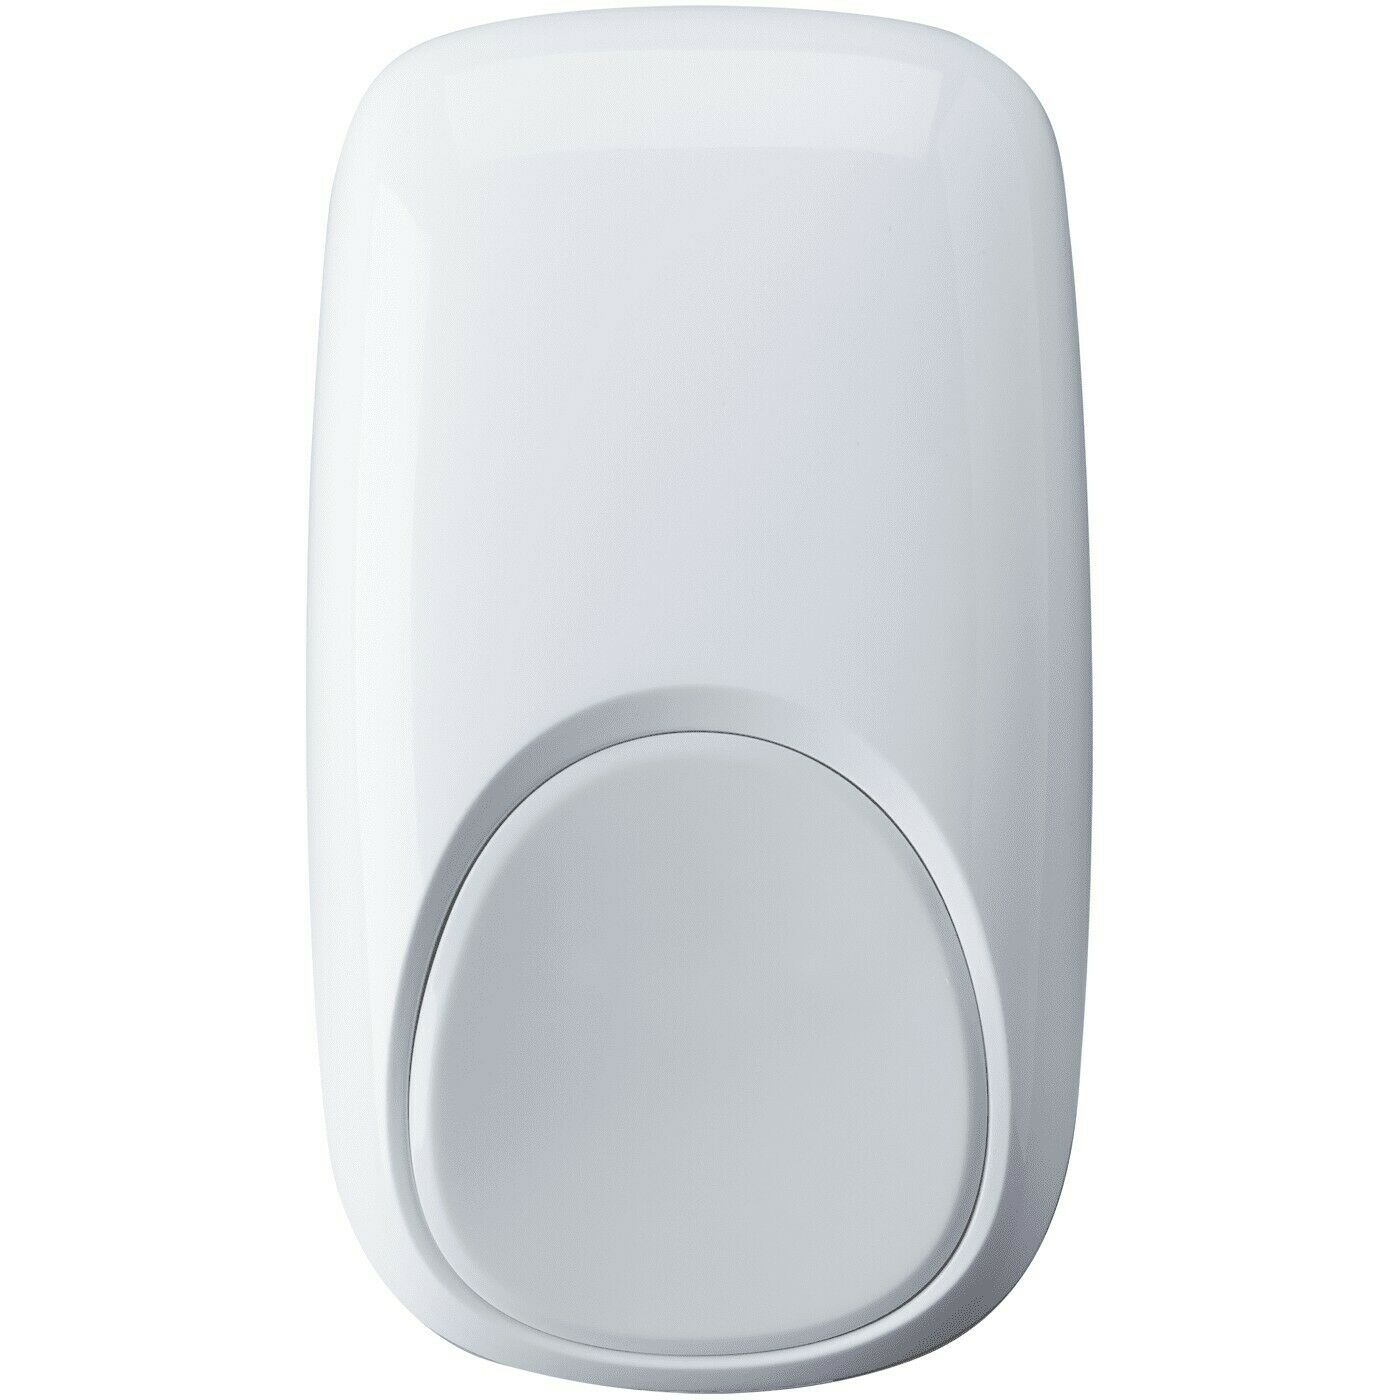 Honeywell DT8050A-SN Dual Tec V-Plex Motion Sensor With Anit-Mask - $69.99